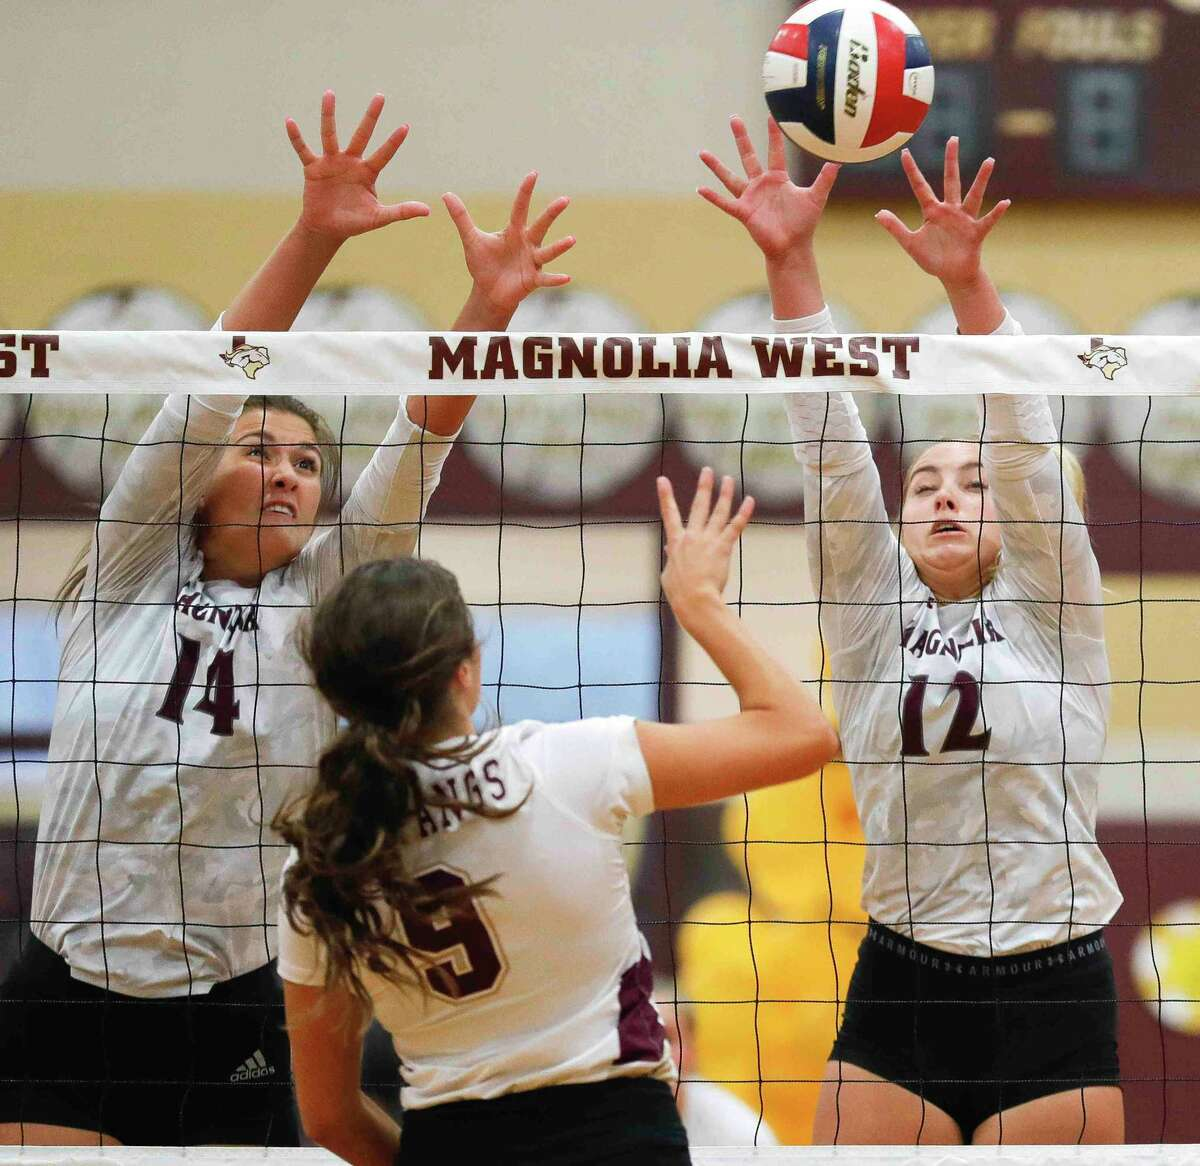 Magnolia's Sydney Gentry (12) block a shot by Magnolia West's Addison Roden beside Magnolia's Alex Bull (14) during the first set of a District 19-5A high school volleyball match at Magnolia West High School, Tuesday, Sept. 21, 2021, in Magnolia.